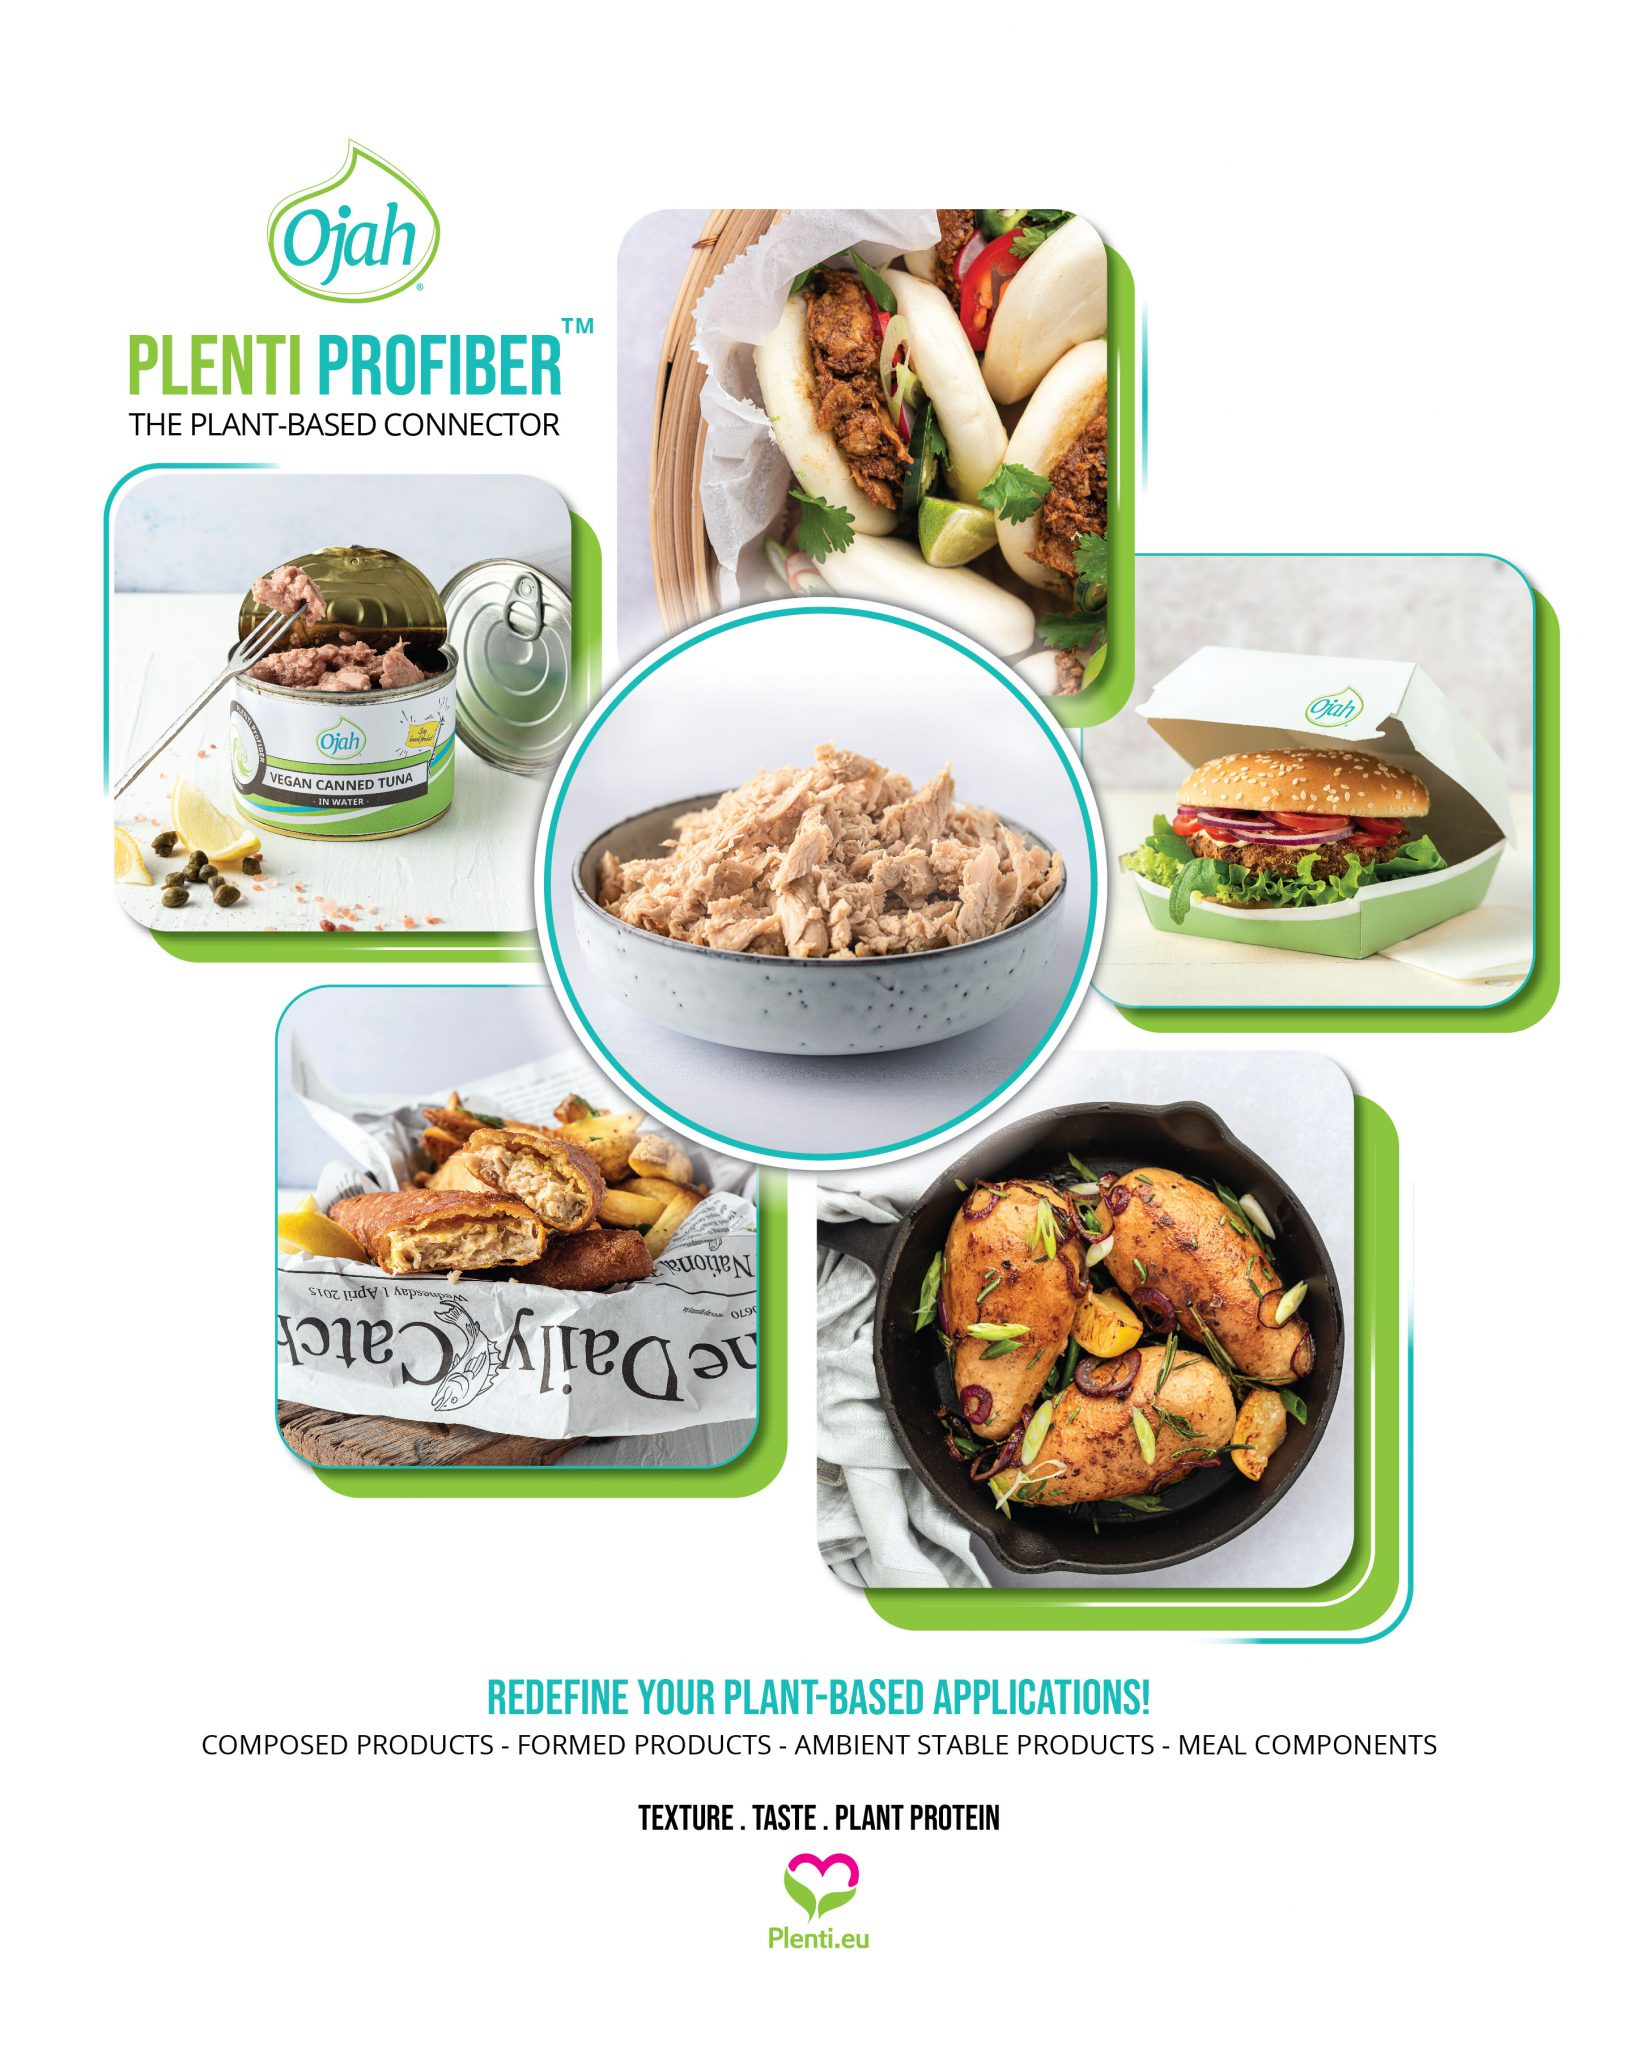 Plenti ProFiber - The Plant-Based Connector